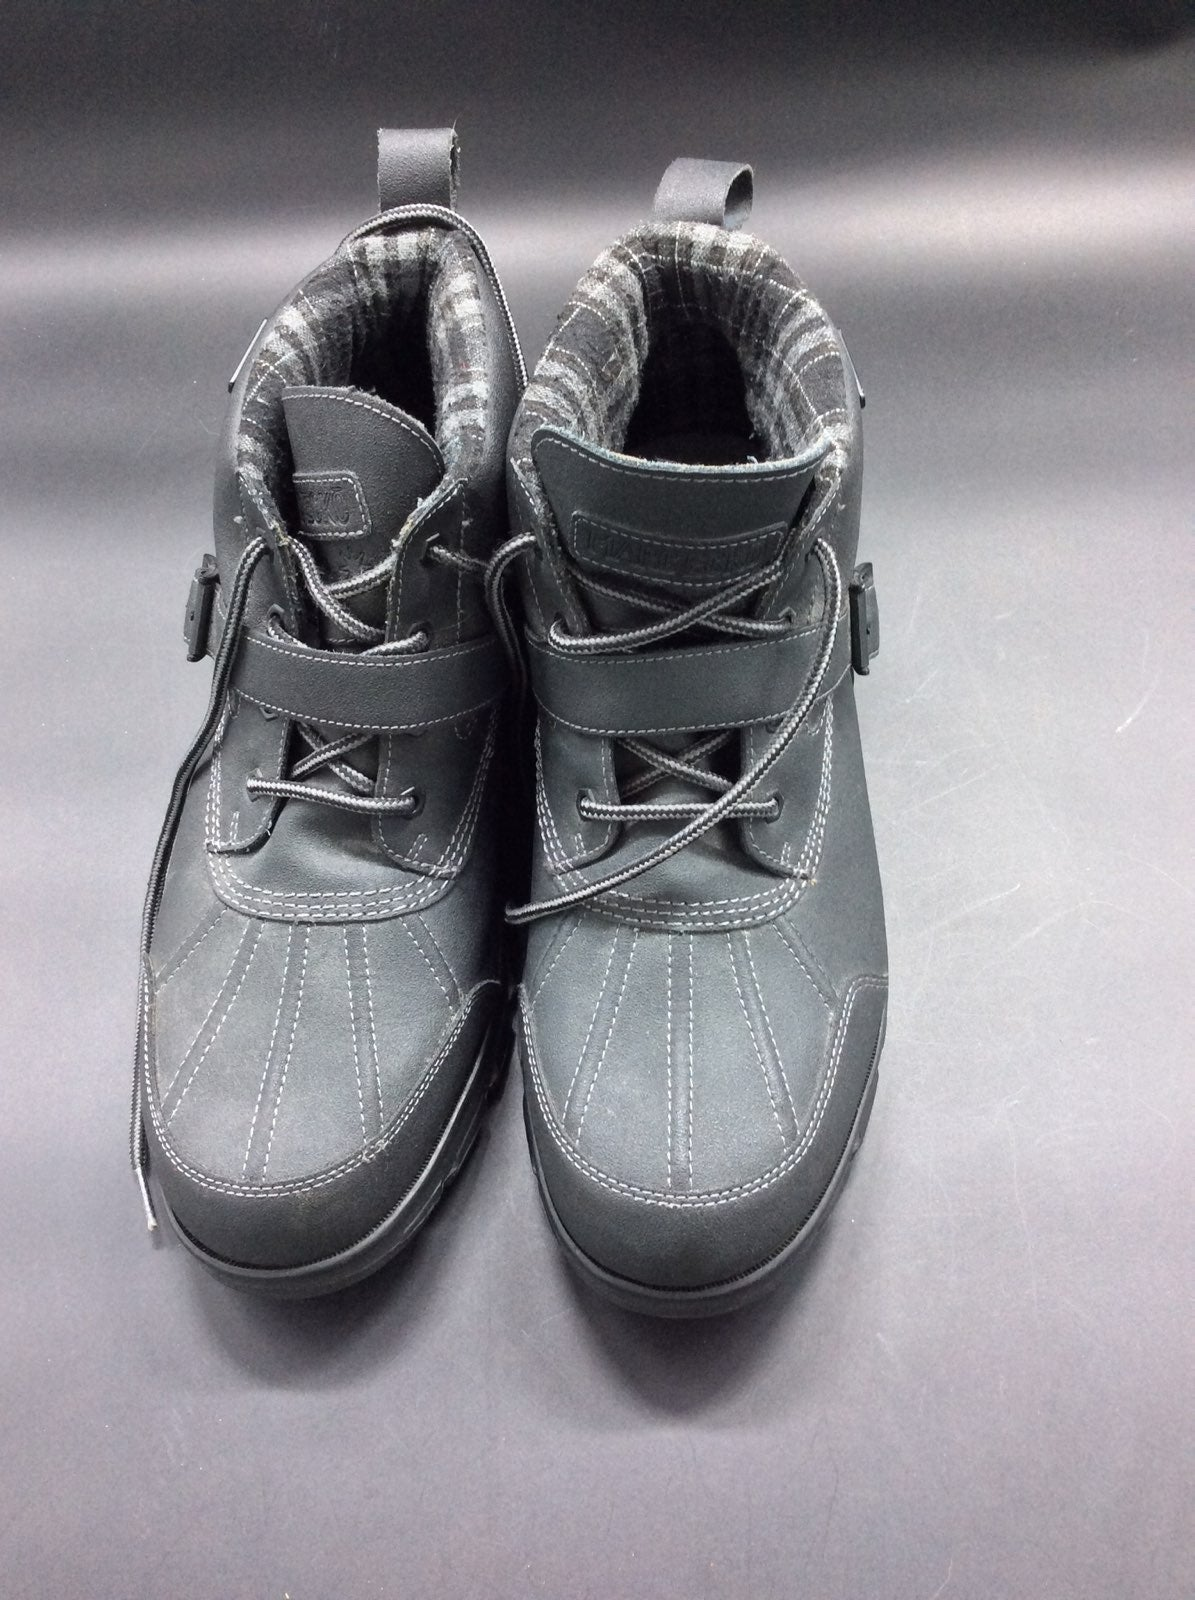 Marc Ecko Water Resistance Boots